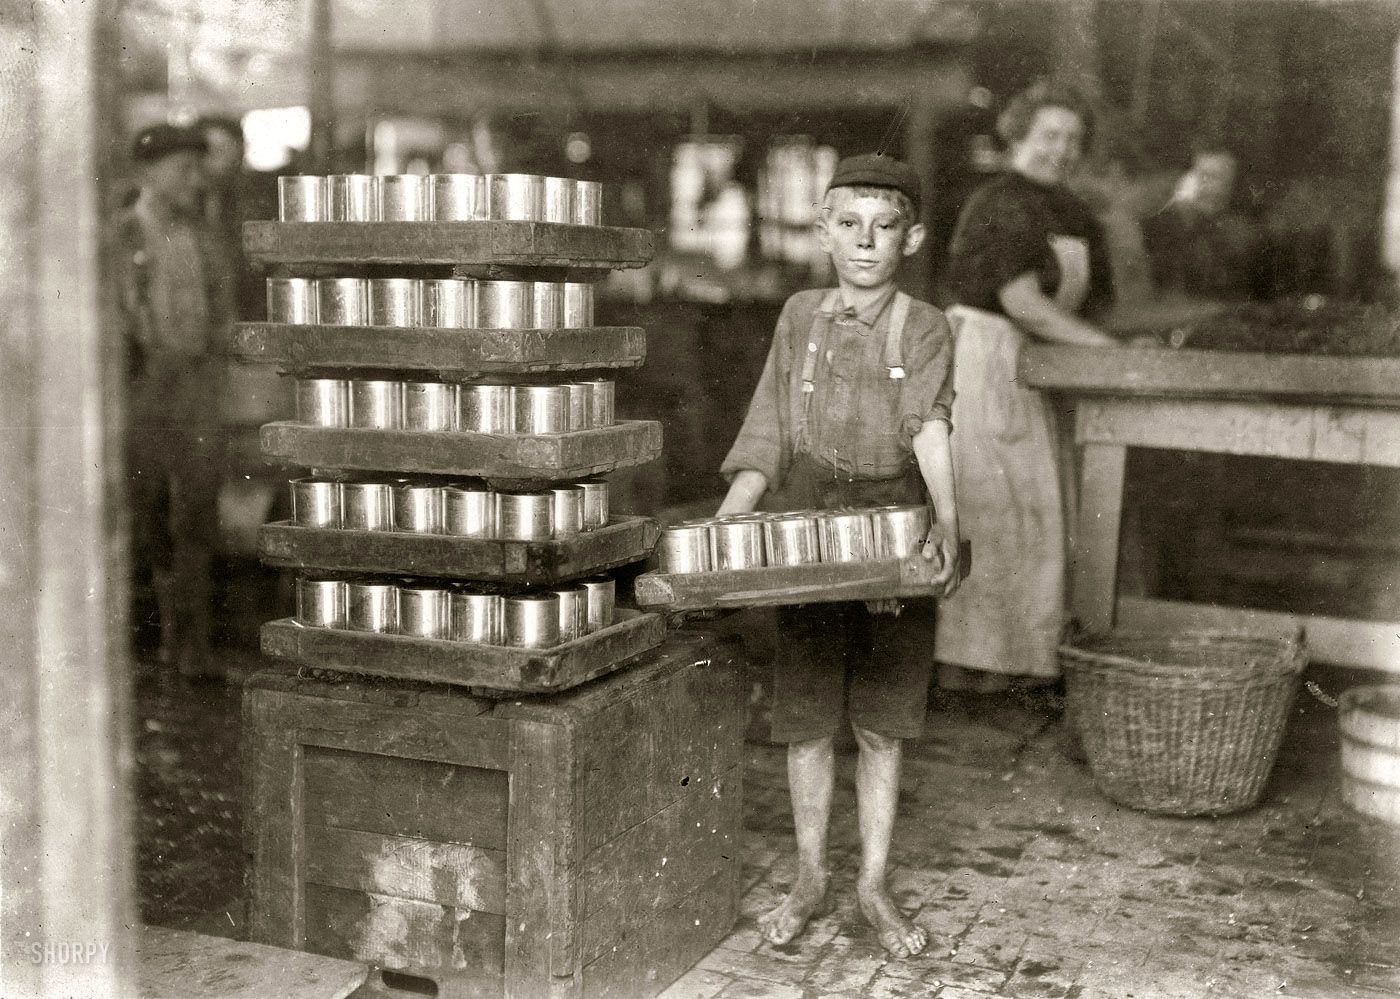 Wow. Amazing Photo of Barefoot Boy at Packing Plant